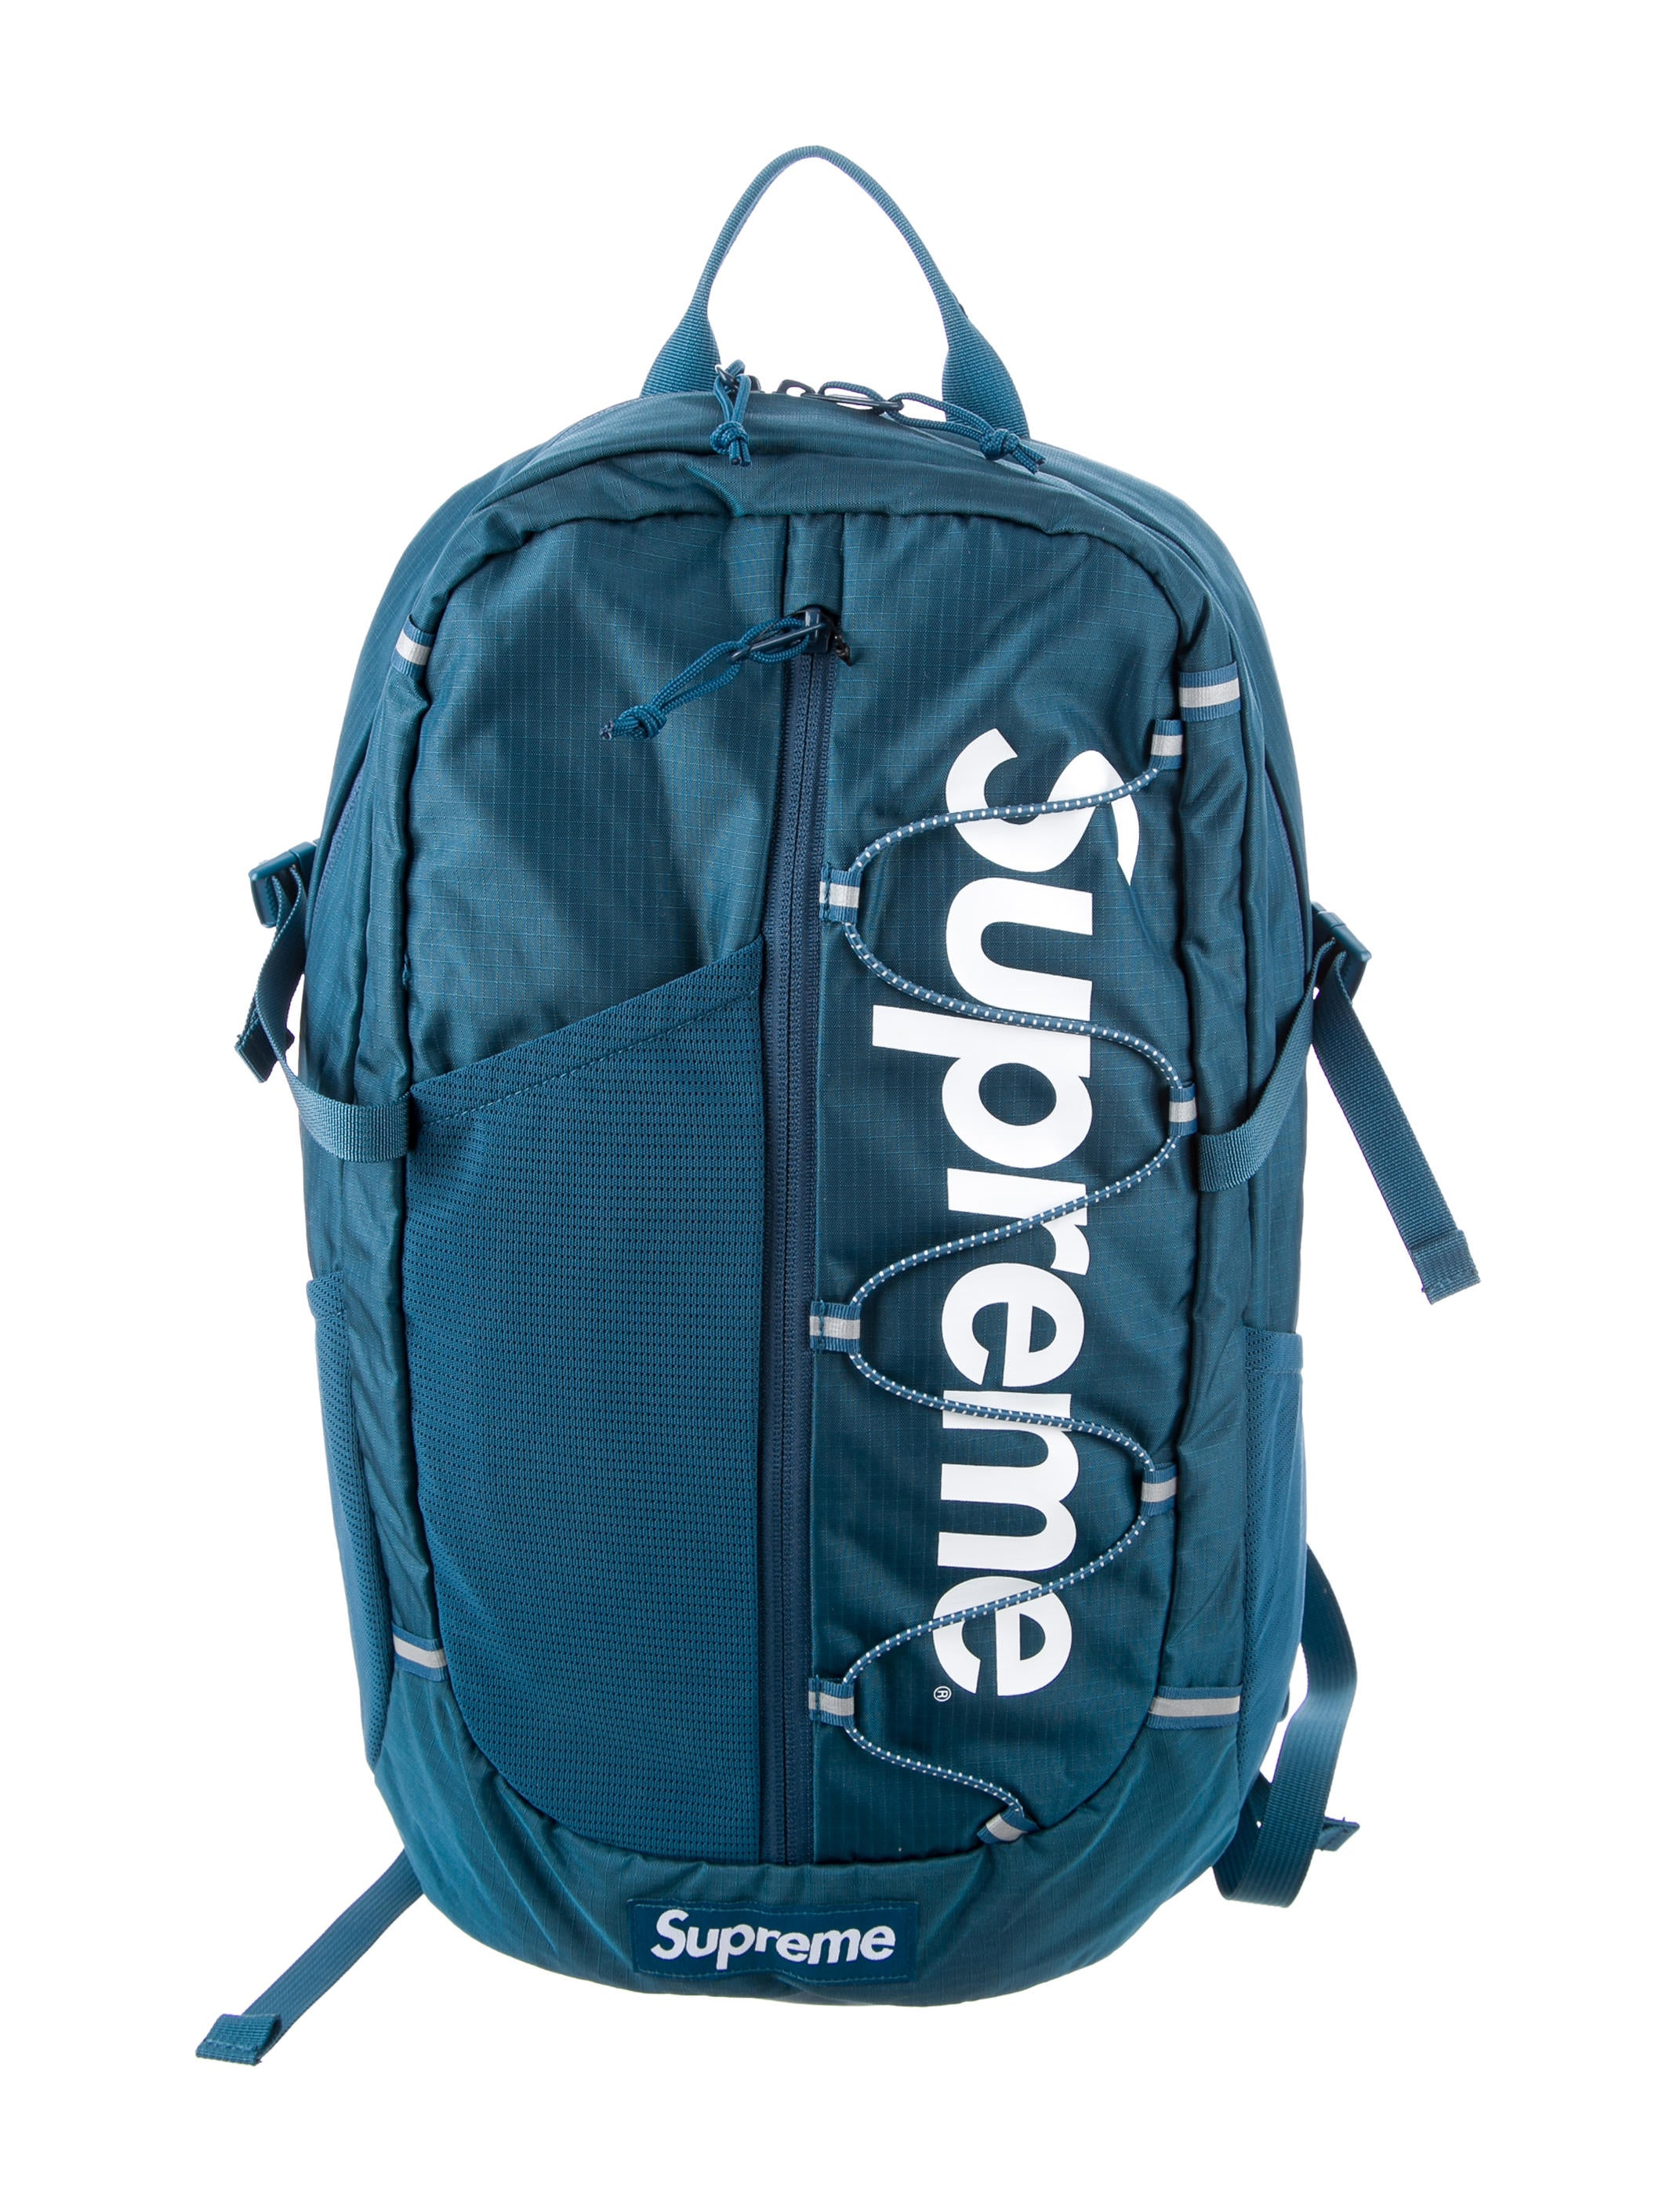 Supreme Logo Travel Backpack W Tags Bags Wspme20194